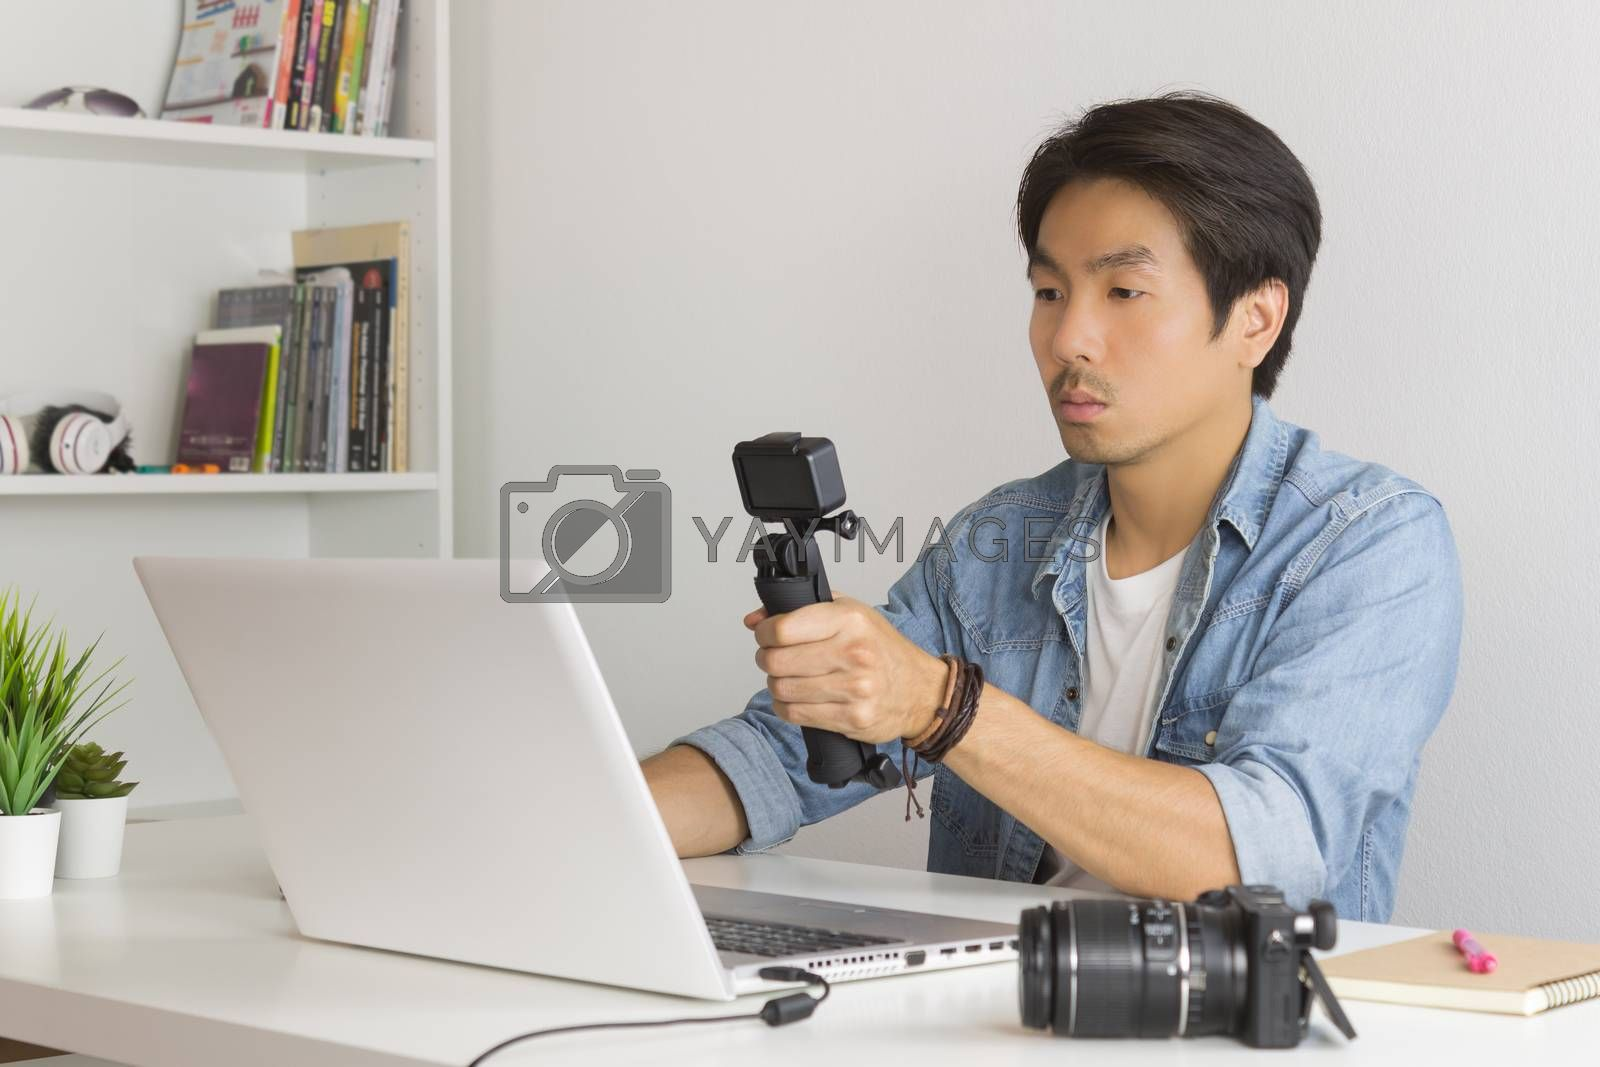 Asian Photographer or Freelancer in Denim or Jeans Shirt Selfie or Take Photo by Action Camera in Front of Laptop in Home Office. Photographer or freelancer working with technology